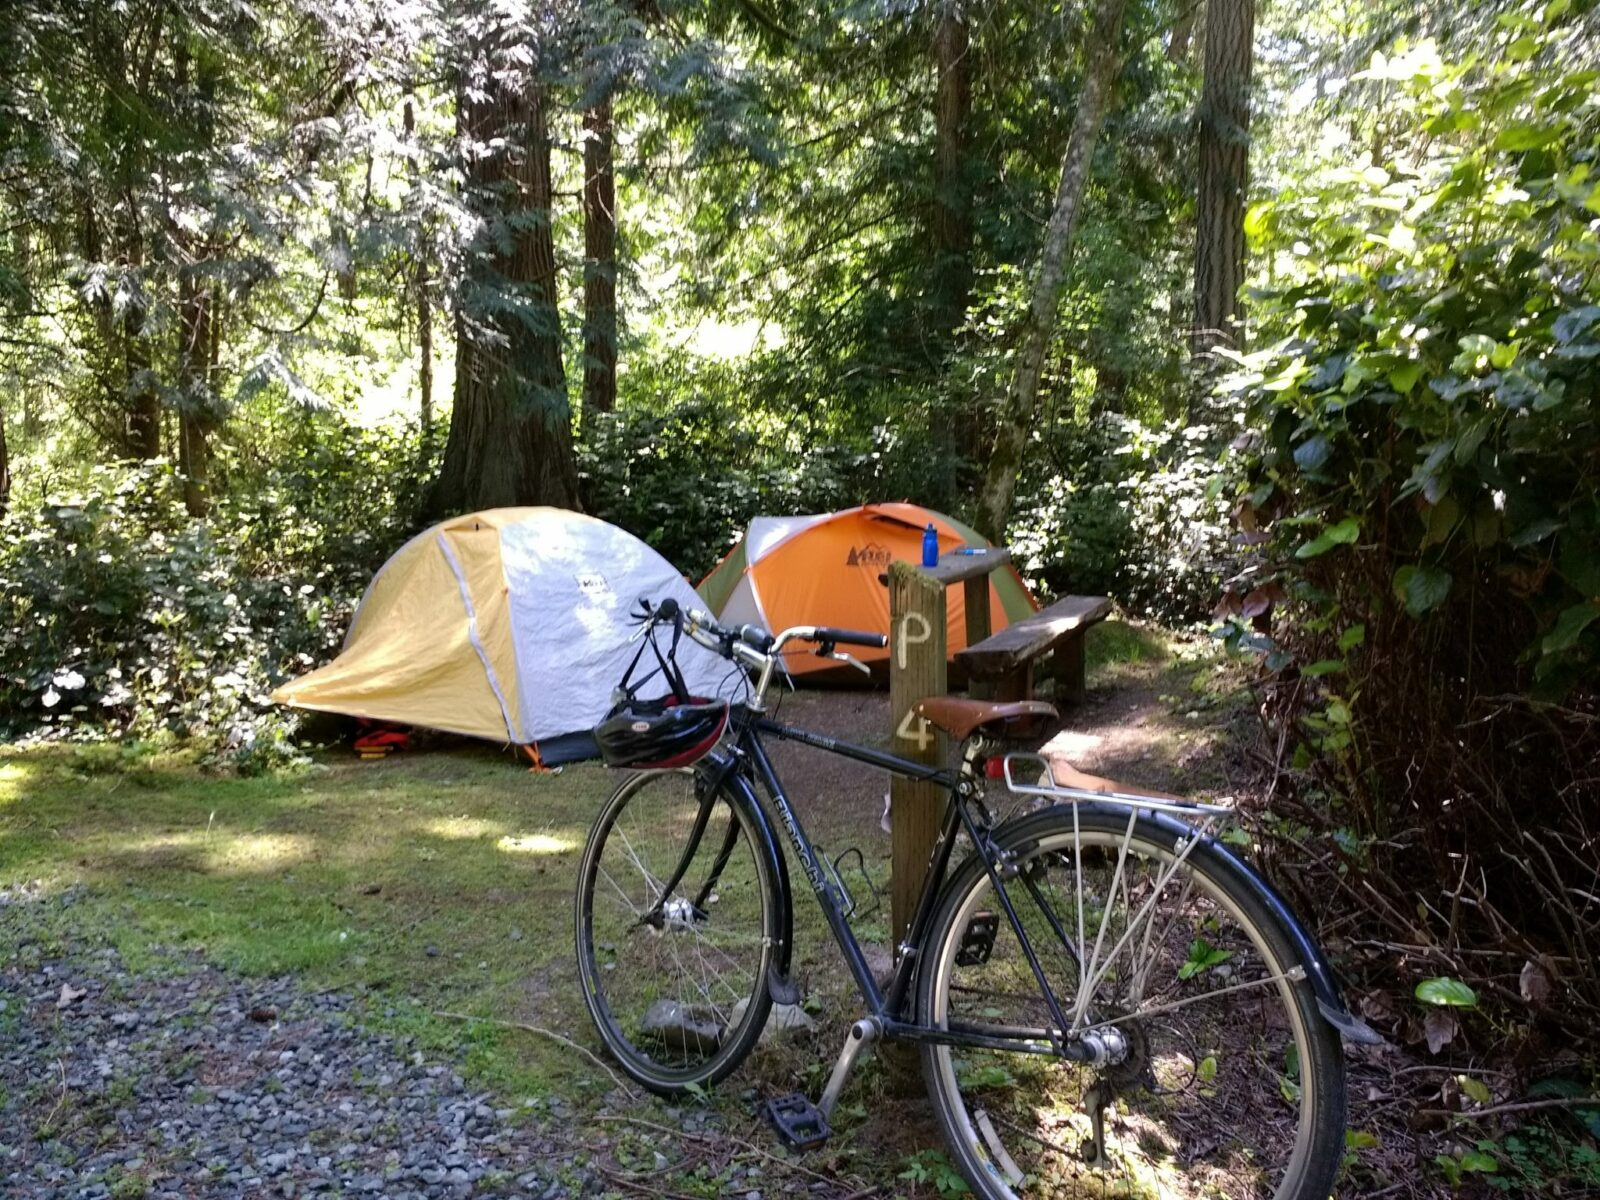 Camping in the San Juan Islands by bike at a small campsite. There are two tents and a bike leaning against a wooden bench in the forest